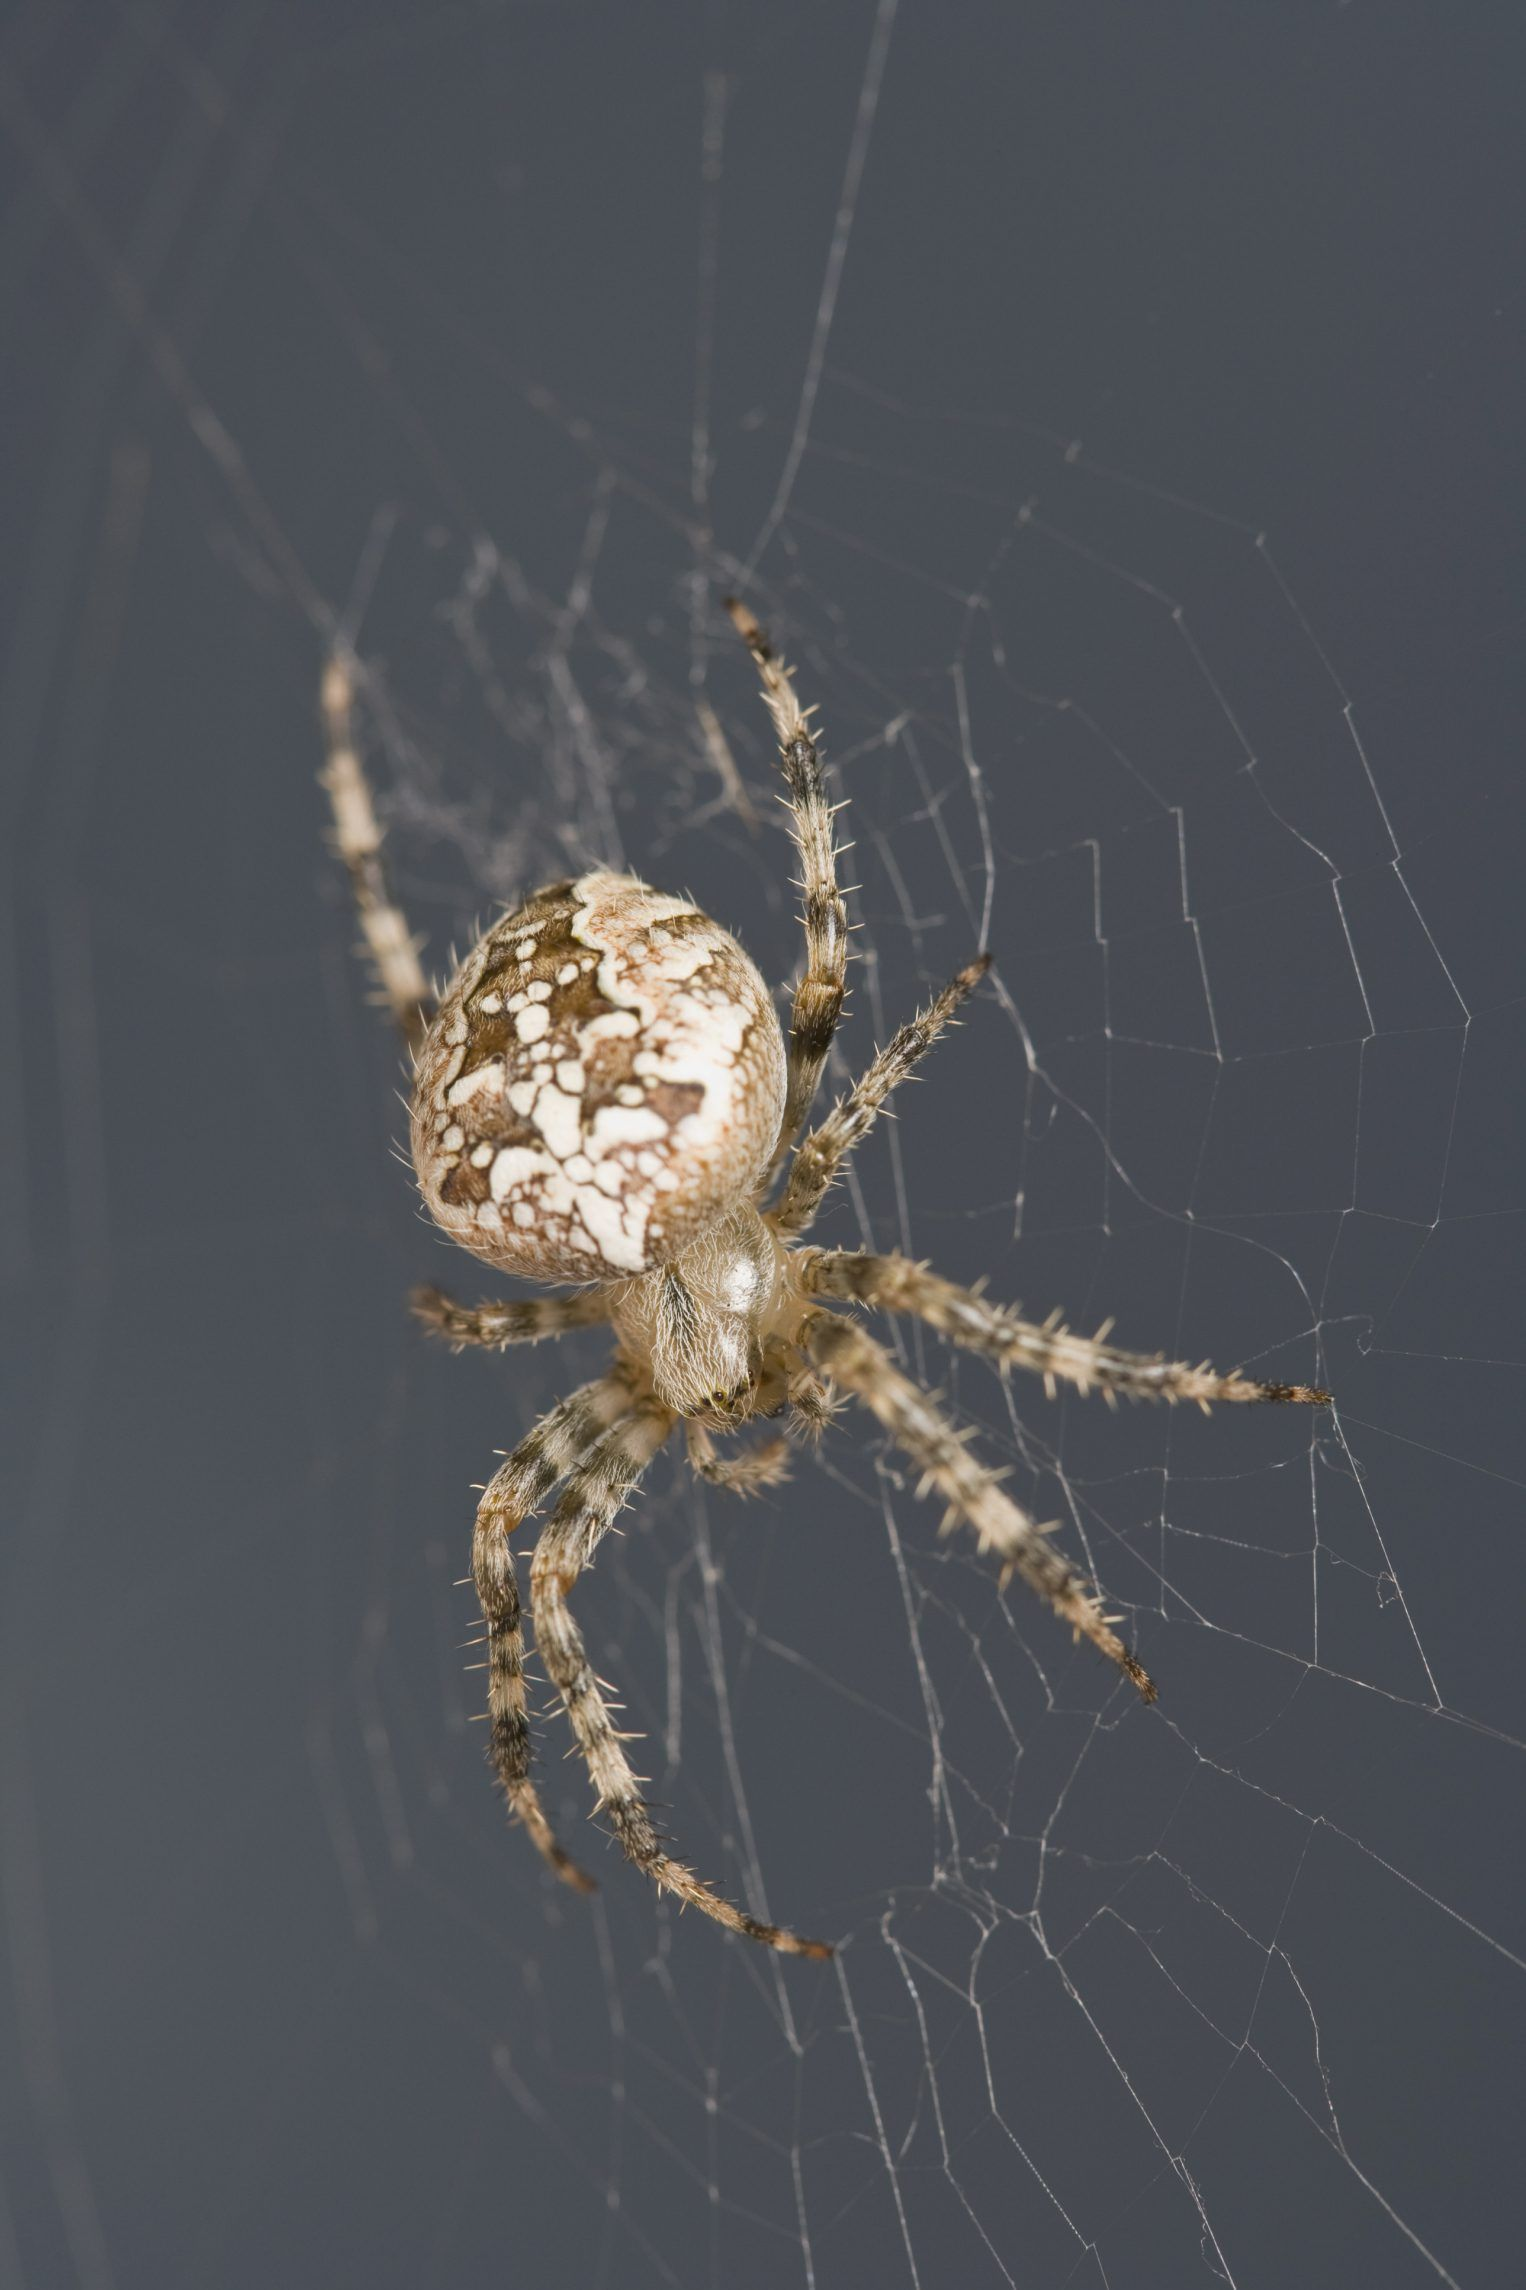 b29d51e57c68ccf18bf35db5b1dee308 - How To Get Rid Of Spiders From Your Car